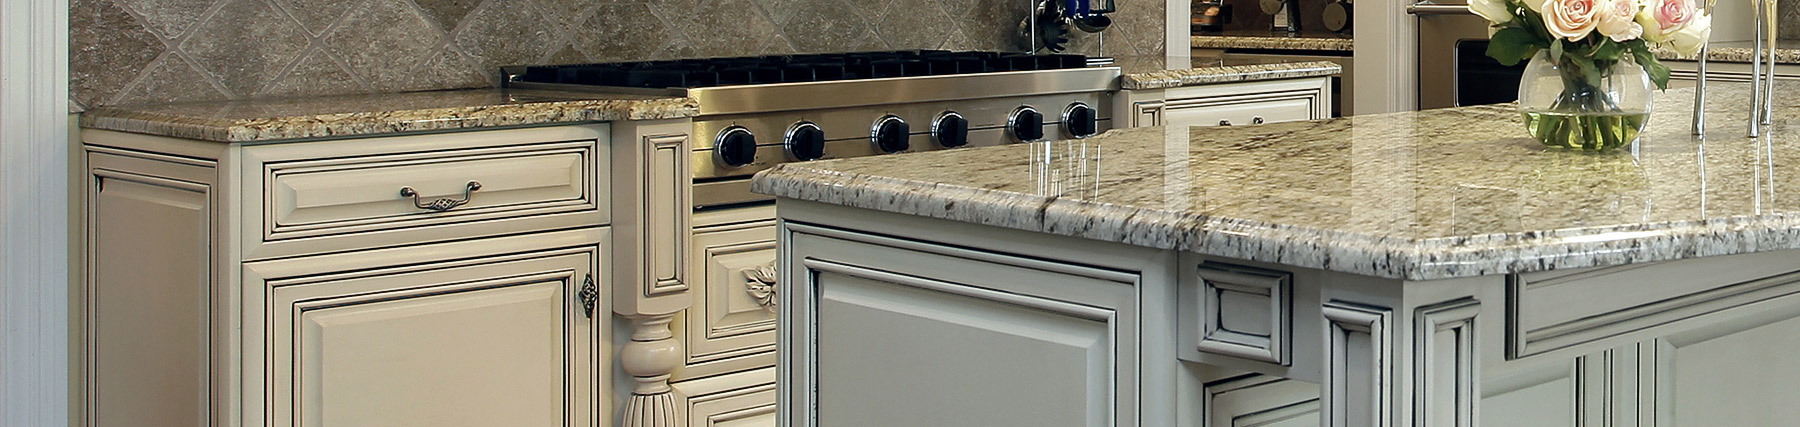 SPECIAL: Granite Starting At $29 Per SF Quality Service And Value.